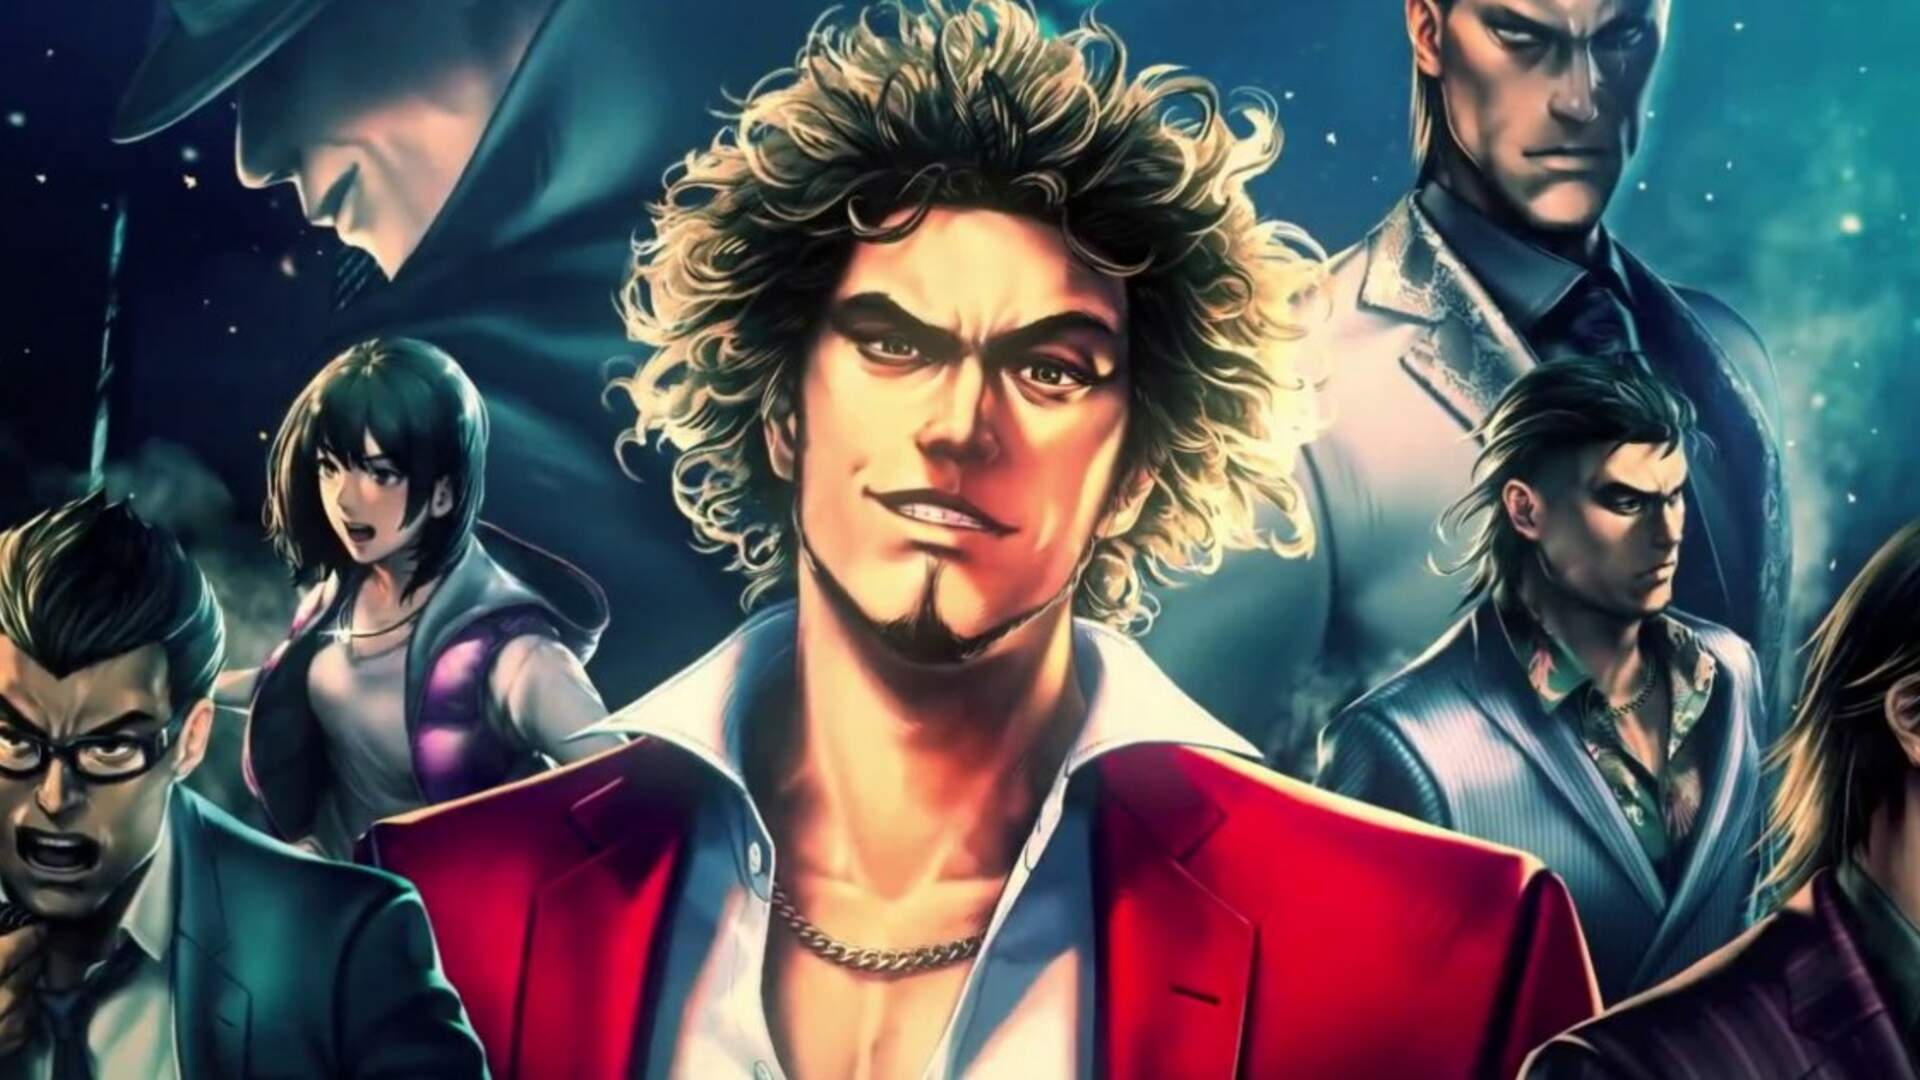 Yakuza Online Won't Come West Because of Gacha Mechanics, Says Series Producer